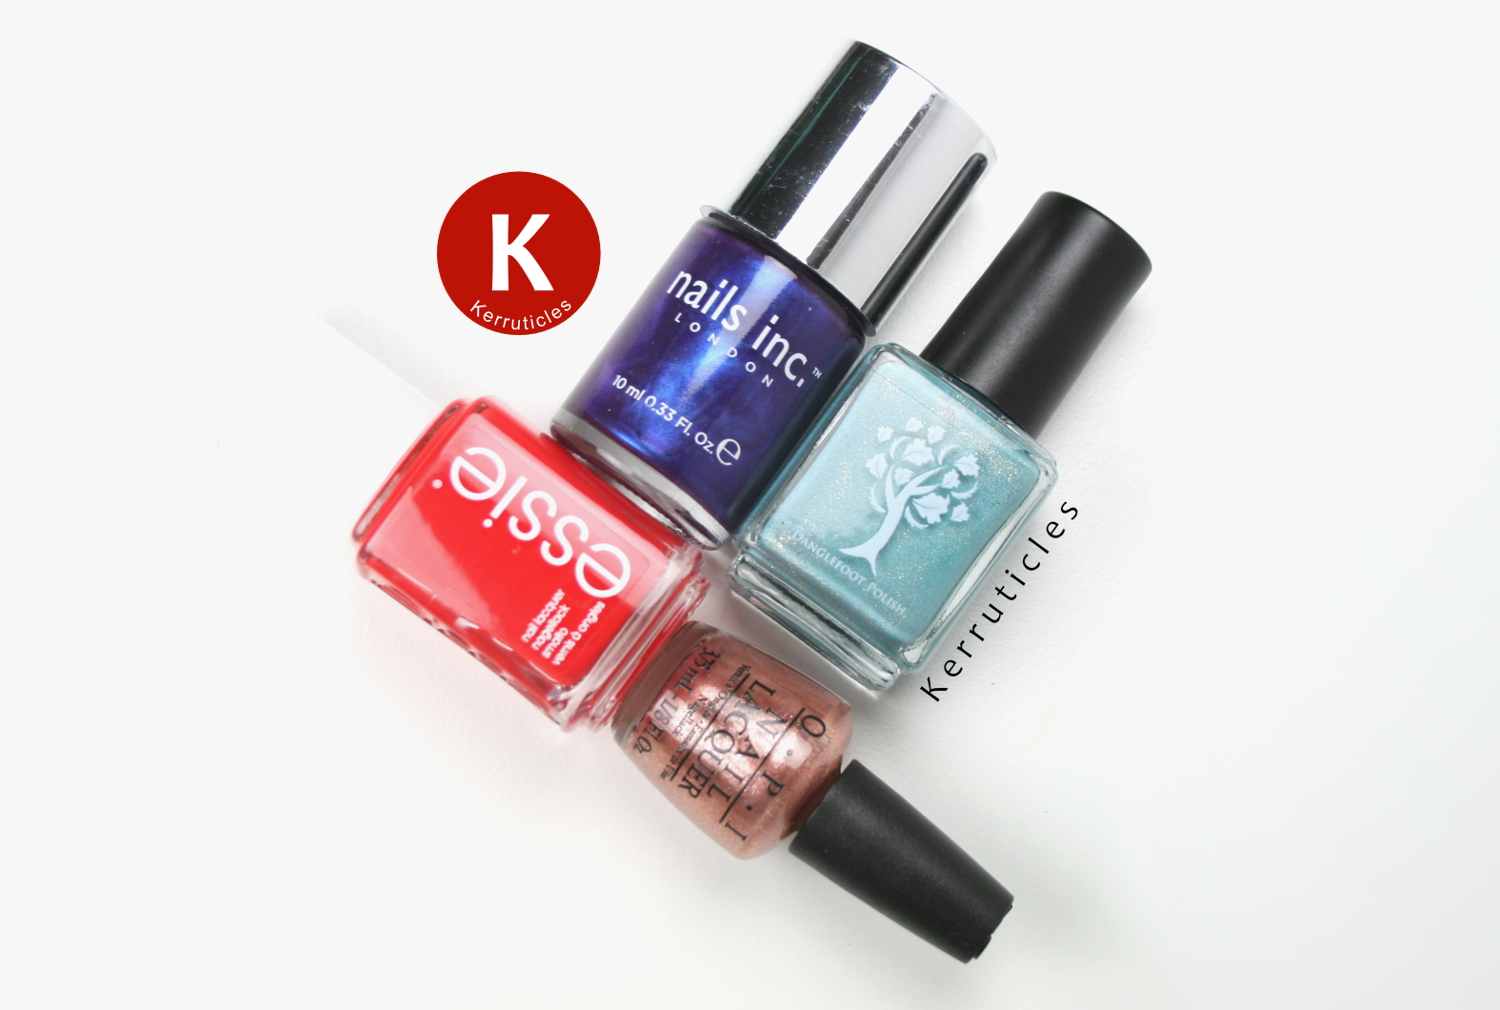 The polishes you get with the September 2015 Coloristiq Manicure Box